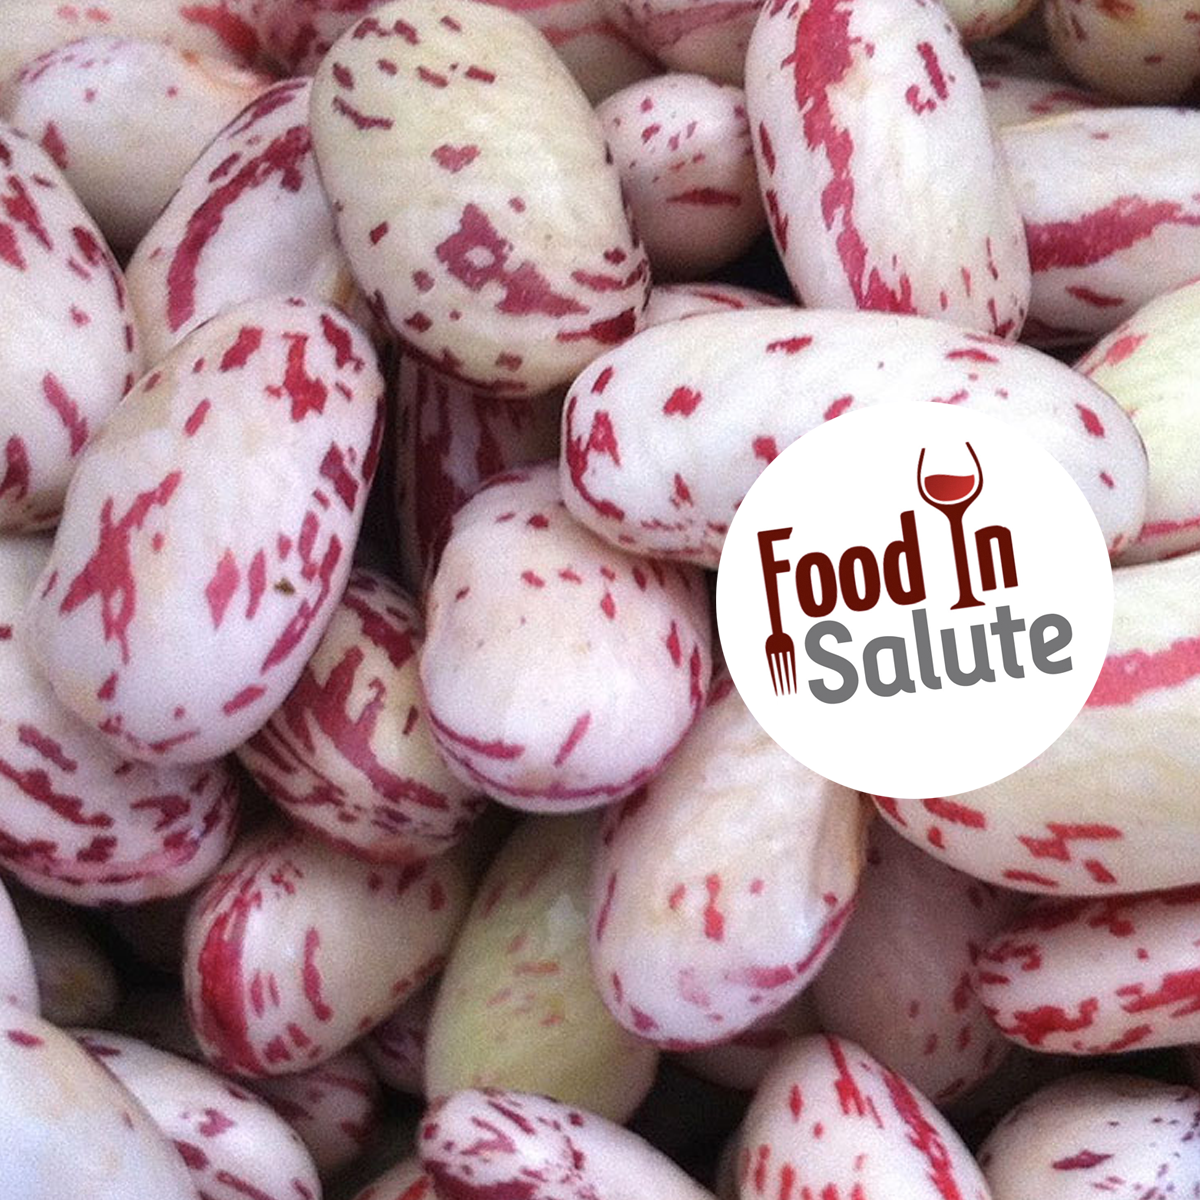 FOOD IN SALUTE - FAGIOLI BORLOTTI